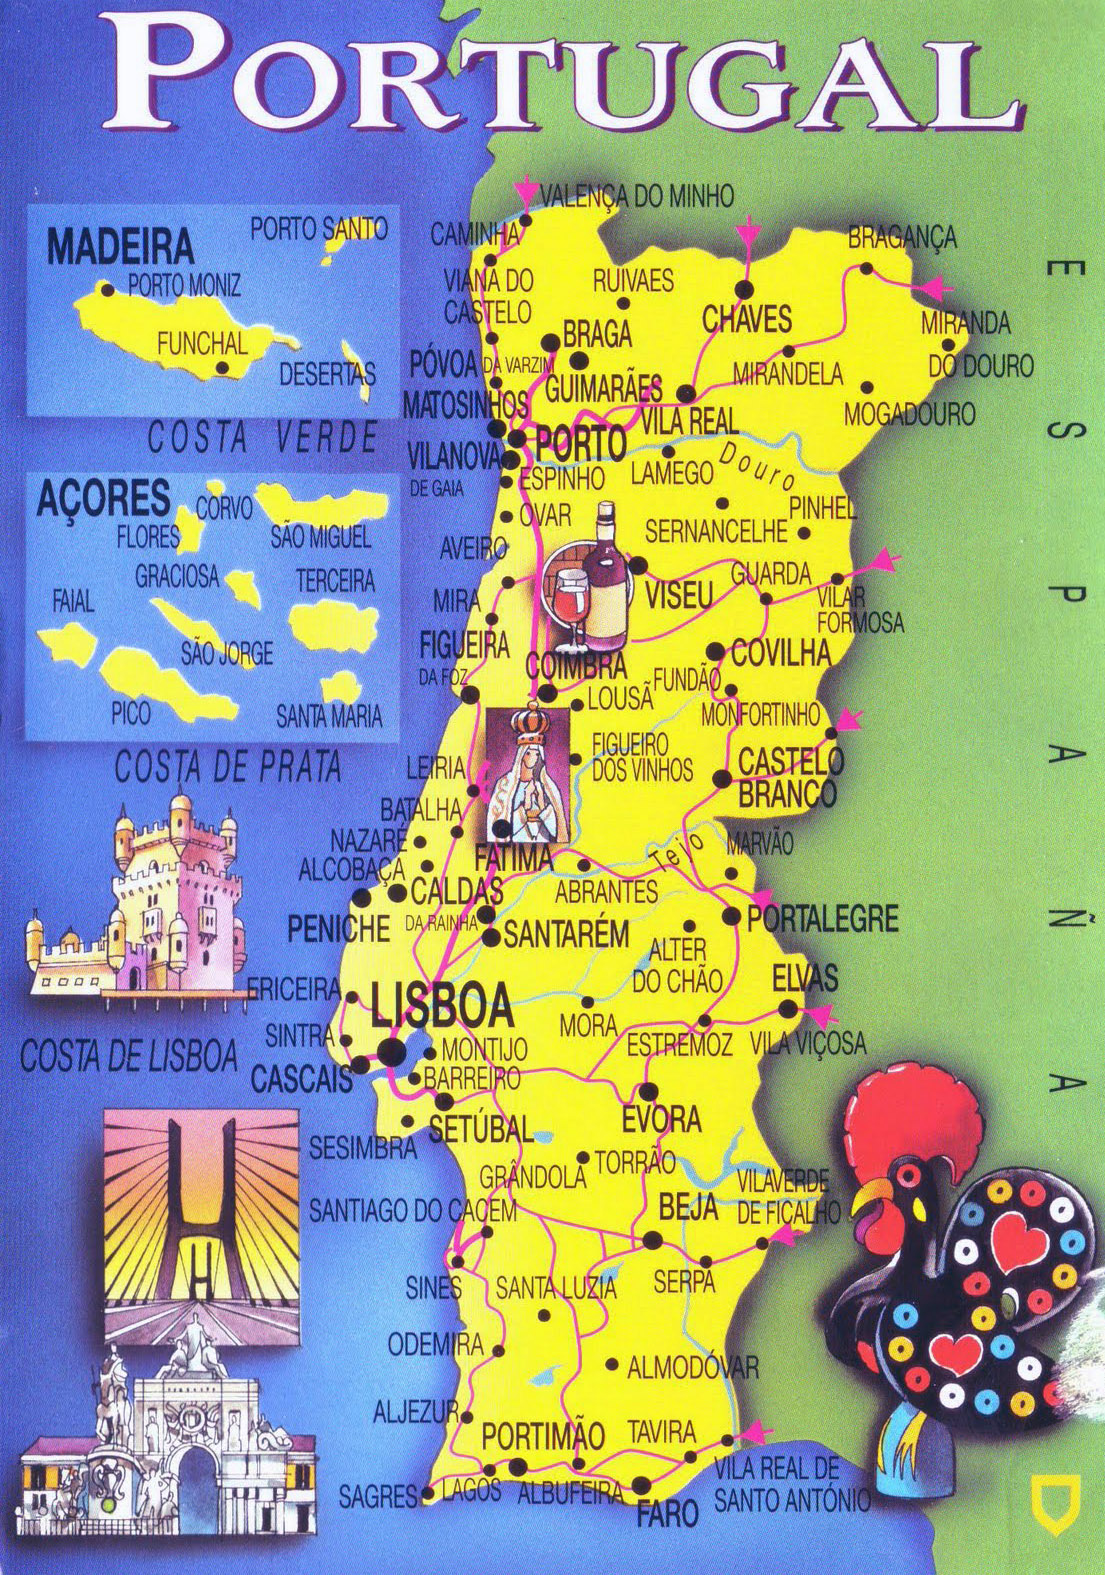 Costa de lisboa map